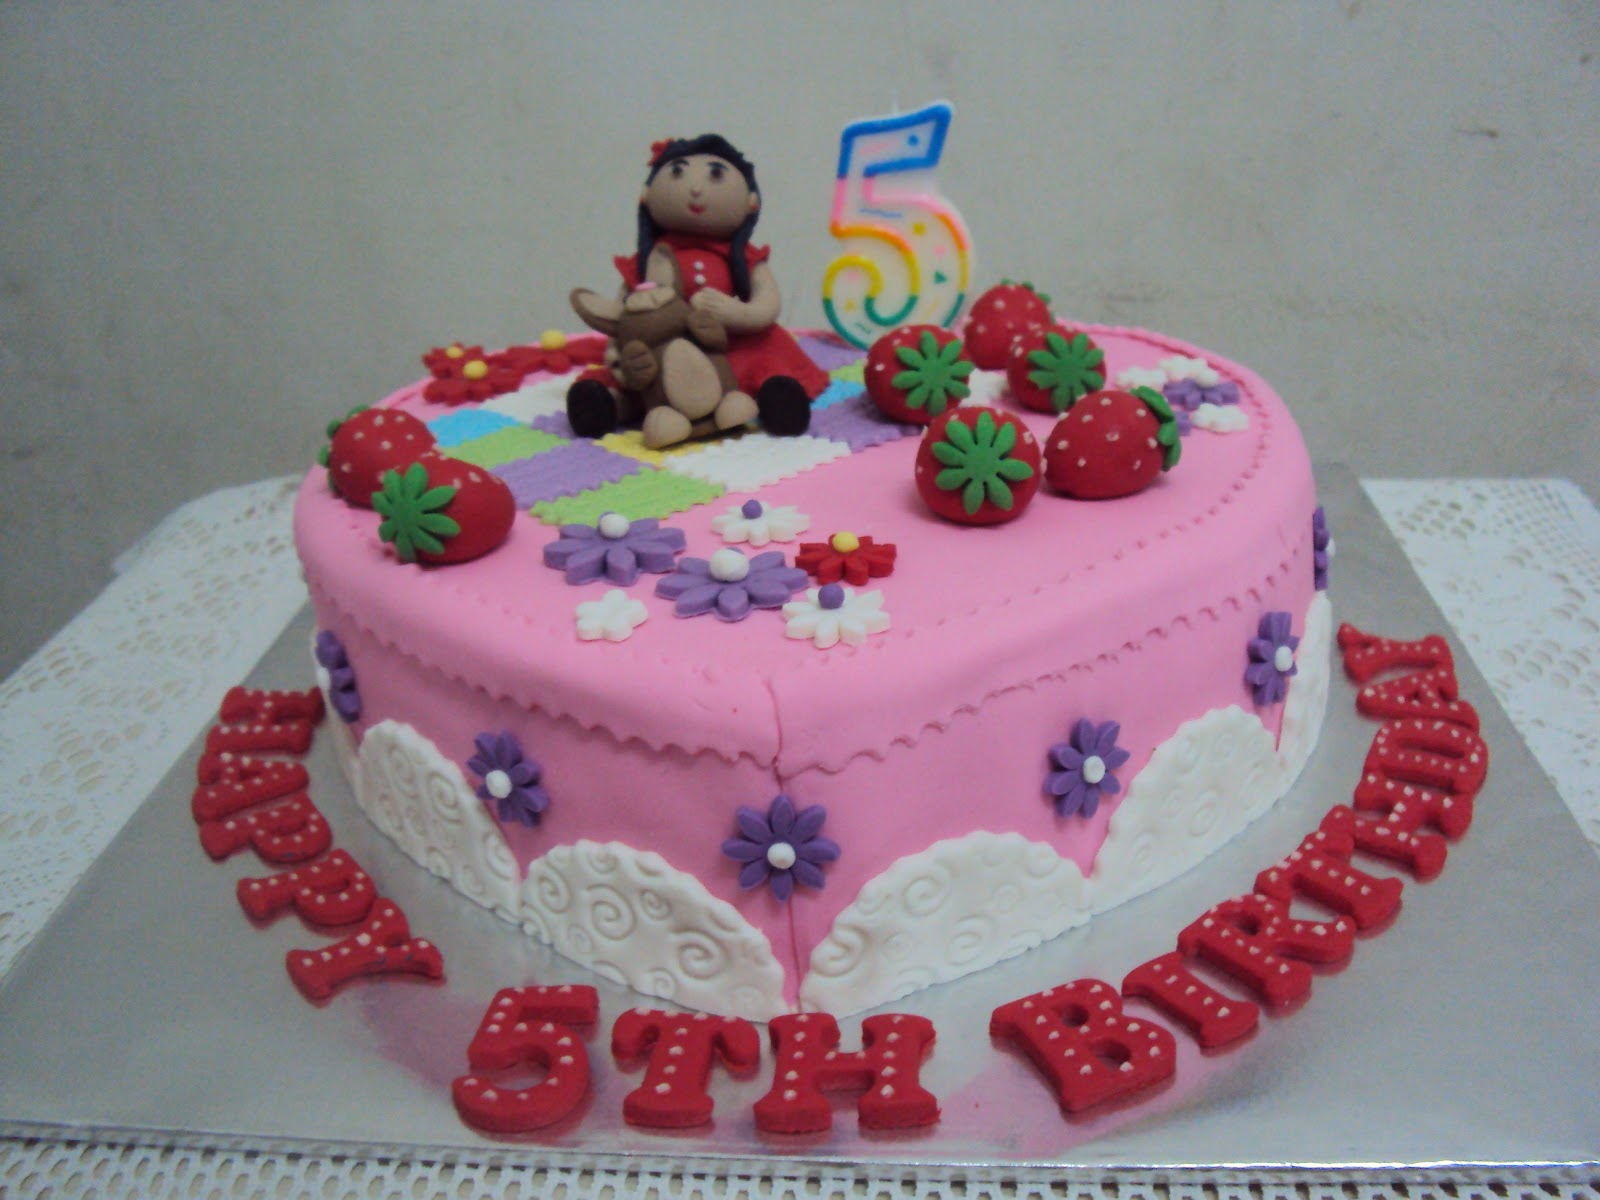 Lmis Cakes Cupcakes Ipoh Contact 012 5991233 Pink Heart